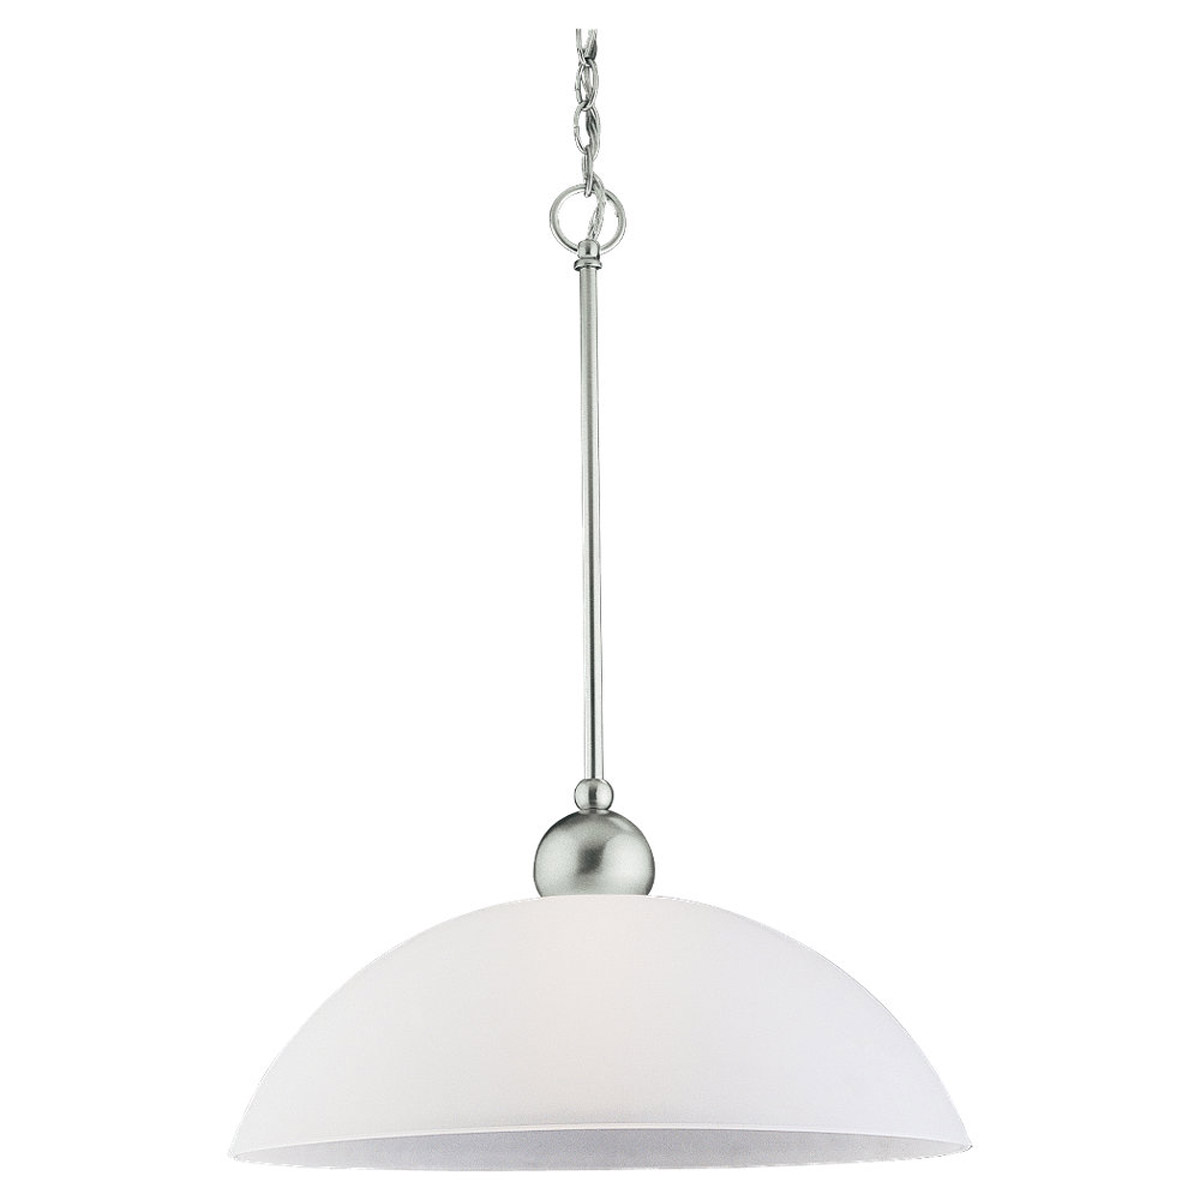 Sea Gull 65035-962 Metropolis 1 Light 18 inch Brushed Nickel Pendant Ceiling Light photo